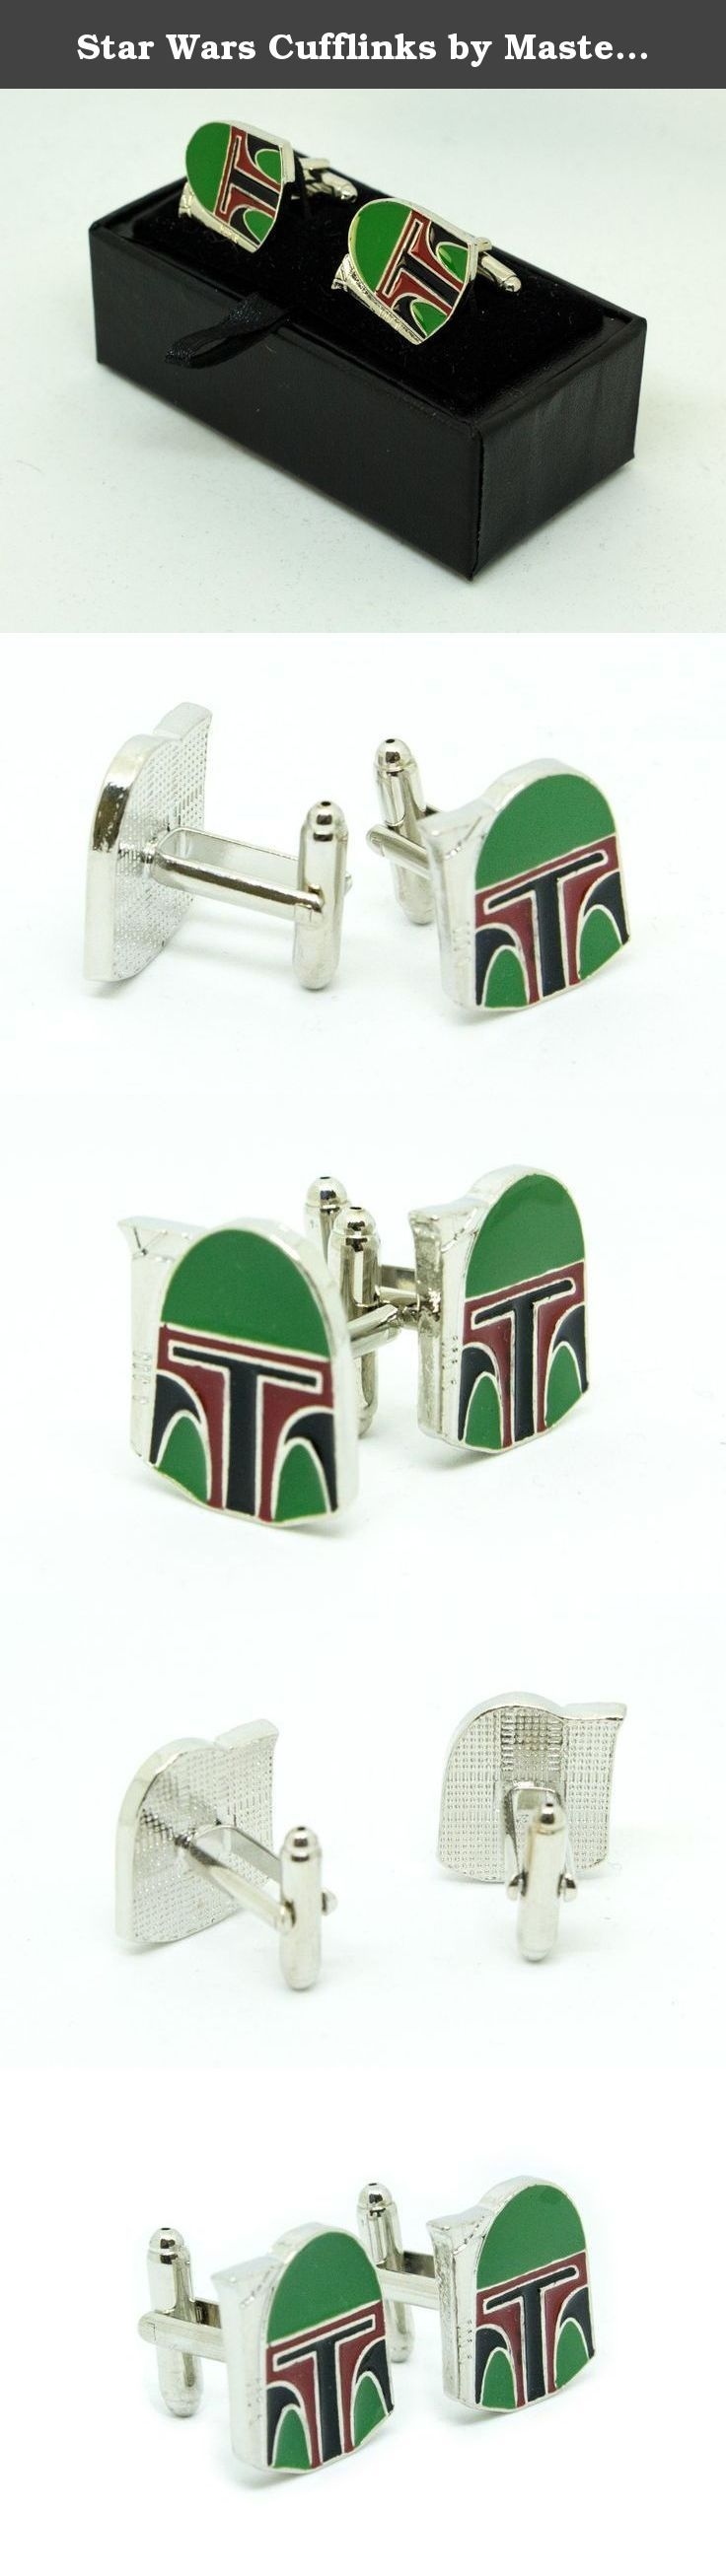 """Star Wars Cufflinks by MasterLinks - The Galactic Empire Collection (Boba Fett). Boba Fett Star Wars Cufflinks The Death of Boba Fett """"Boba Fett? Boba Fett? Where?"""" -Han Solo, just before knocking Fett into the sarlacc. The legendary Mandalorian bounty Hunter met an untimely demise in """"Return of the Jedi"""" when he was knocked inadvertently over the side of a desert skiff into the sarlacc by a blind Han Solo while fighting Luke Skywalker. He was born on Kamino, an unaltered clone of Jango…"""